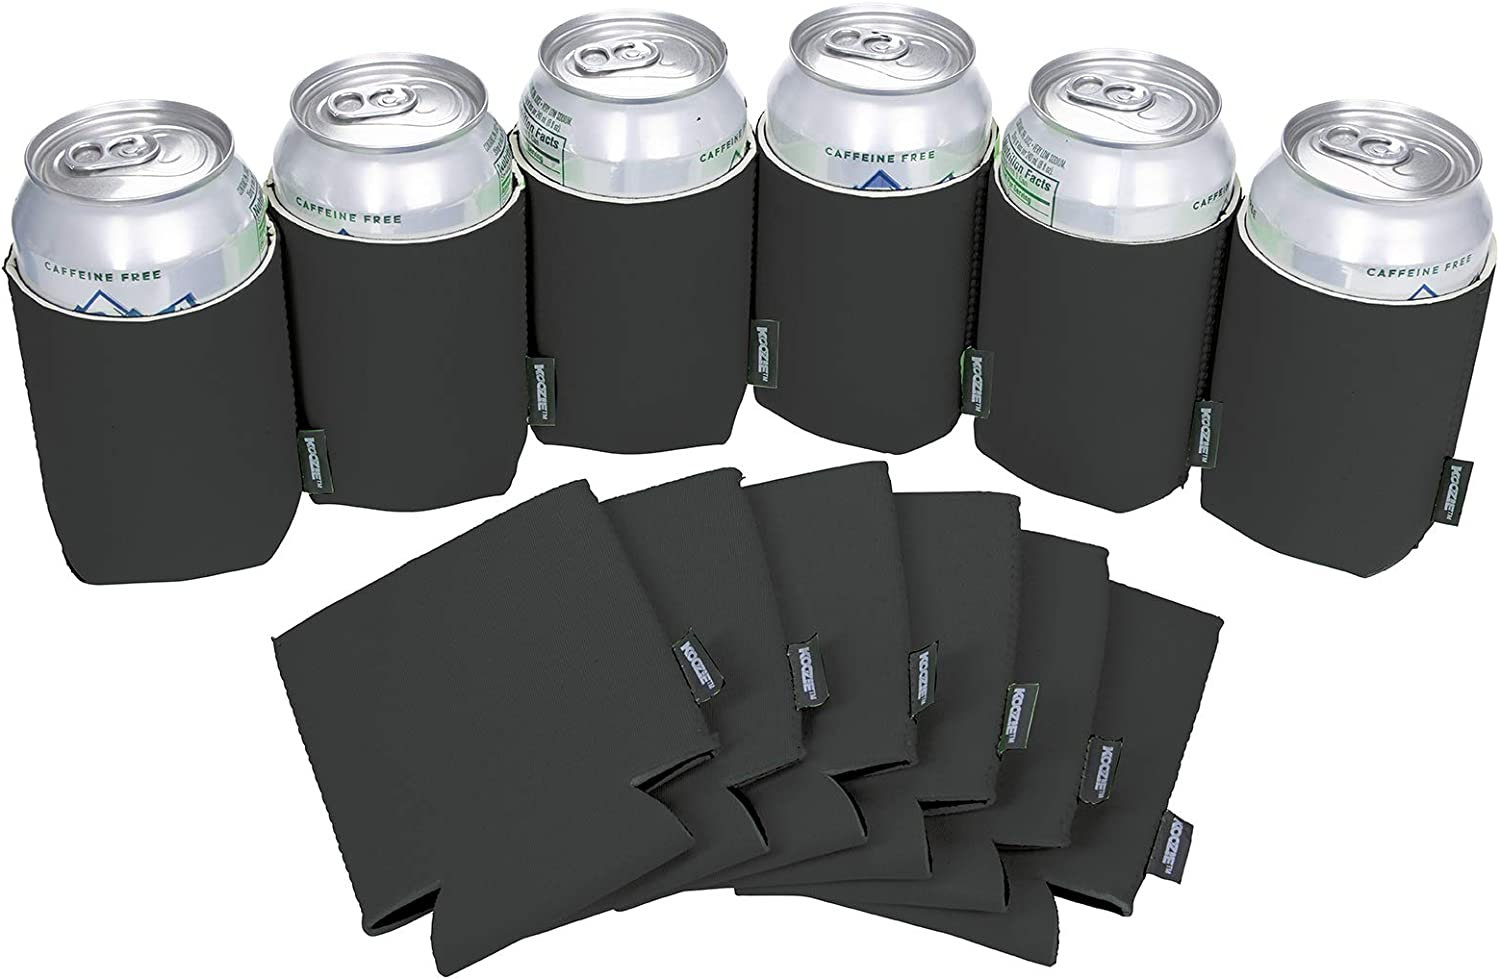 Koozie Can Cooler Blank Neoprene Beer Coozie for Cans, Bulk DIY Insulated 12oz Beverage Holder Personalized Gifts for Events, Bachelorette Parties, Weddings, Birthdays - Pack of 12 Sleeves (Black)